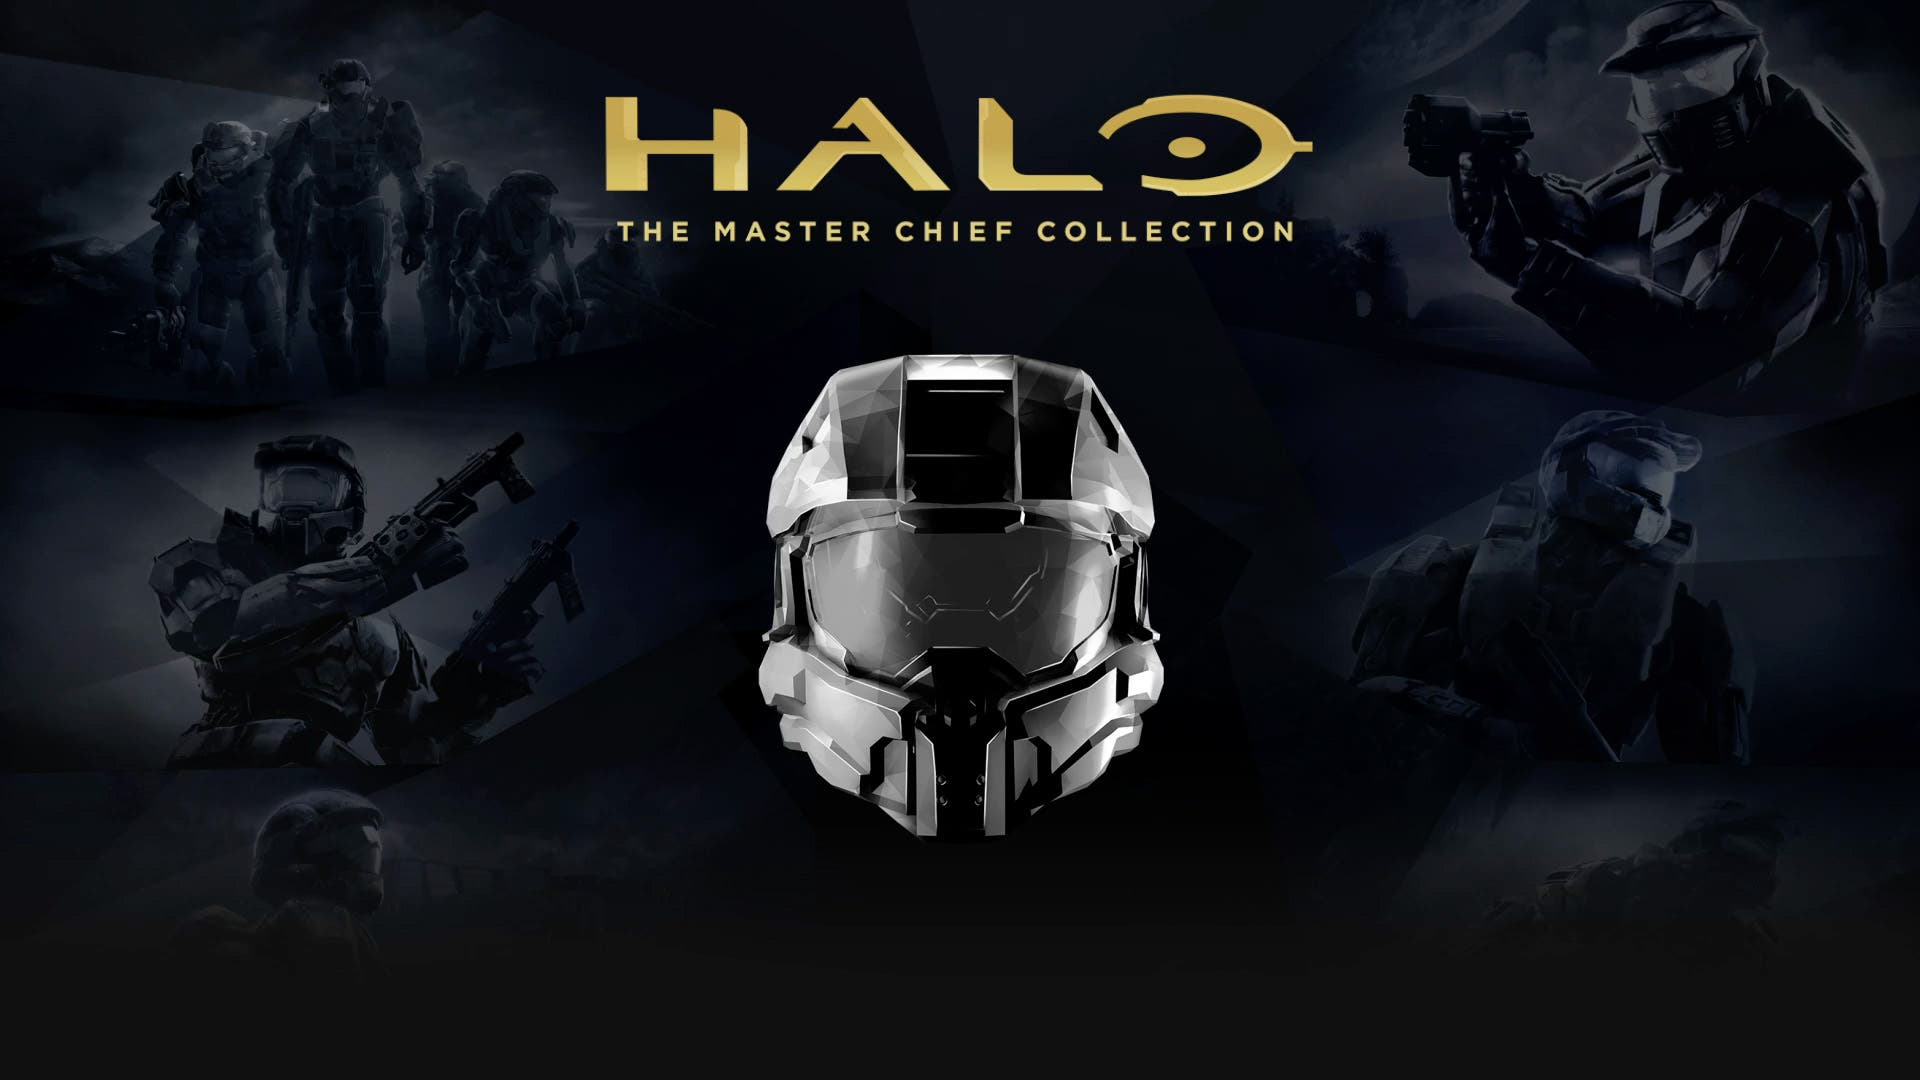 Halo The Master Chief Collection estará optimizado para Xbox Series X|S llegando a 4K y 120 FPS